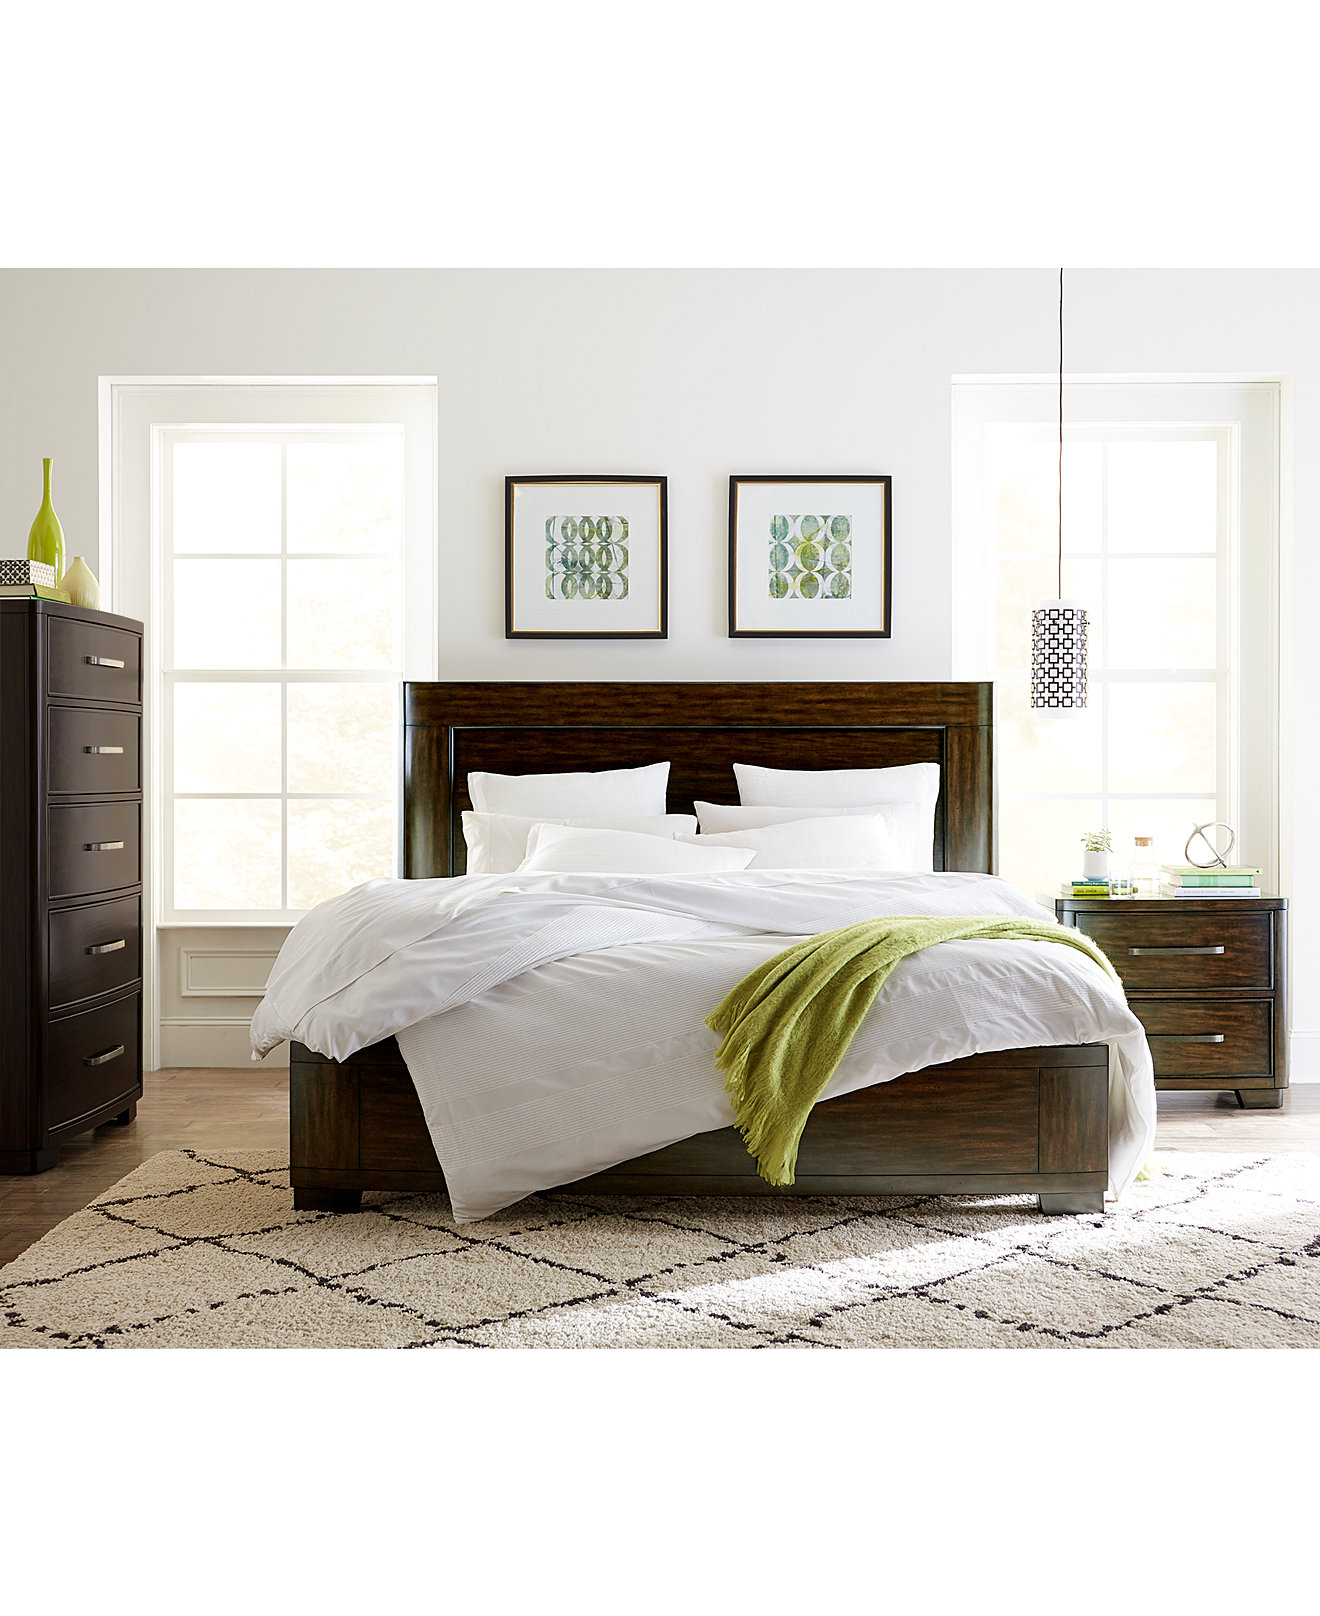 Macys Furniture Bedroom Macys Bedroom Furniture